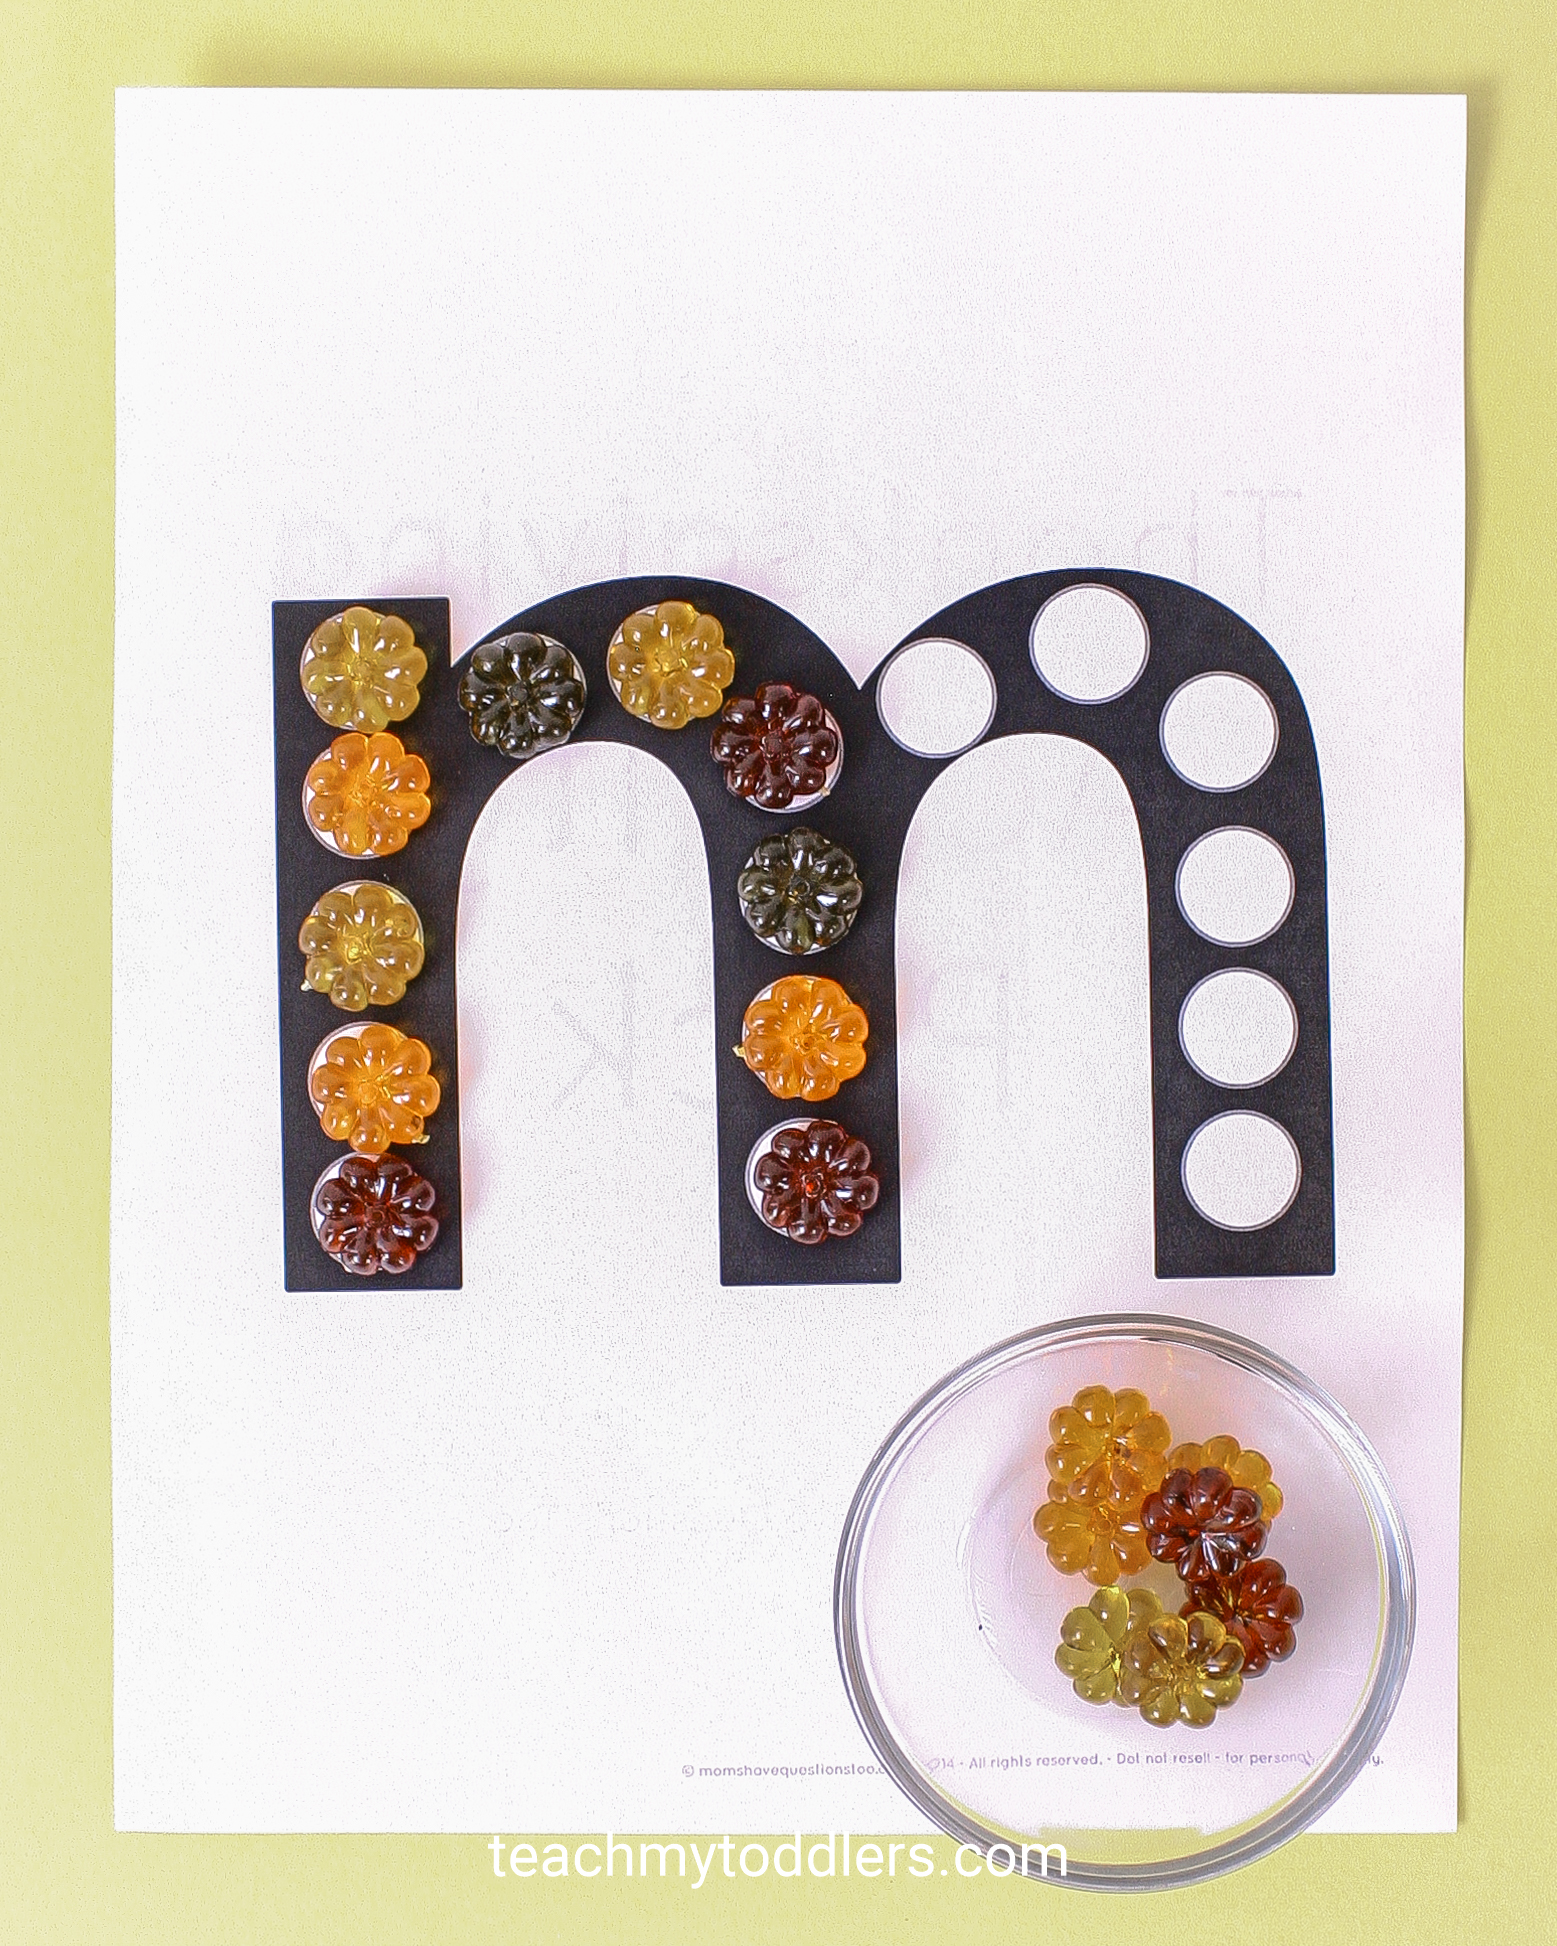 Find out how to use these table scatter activities to teach toddlers math